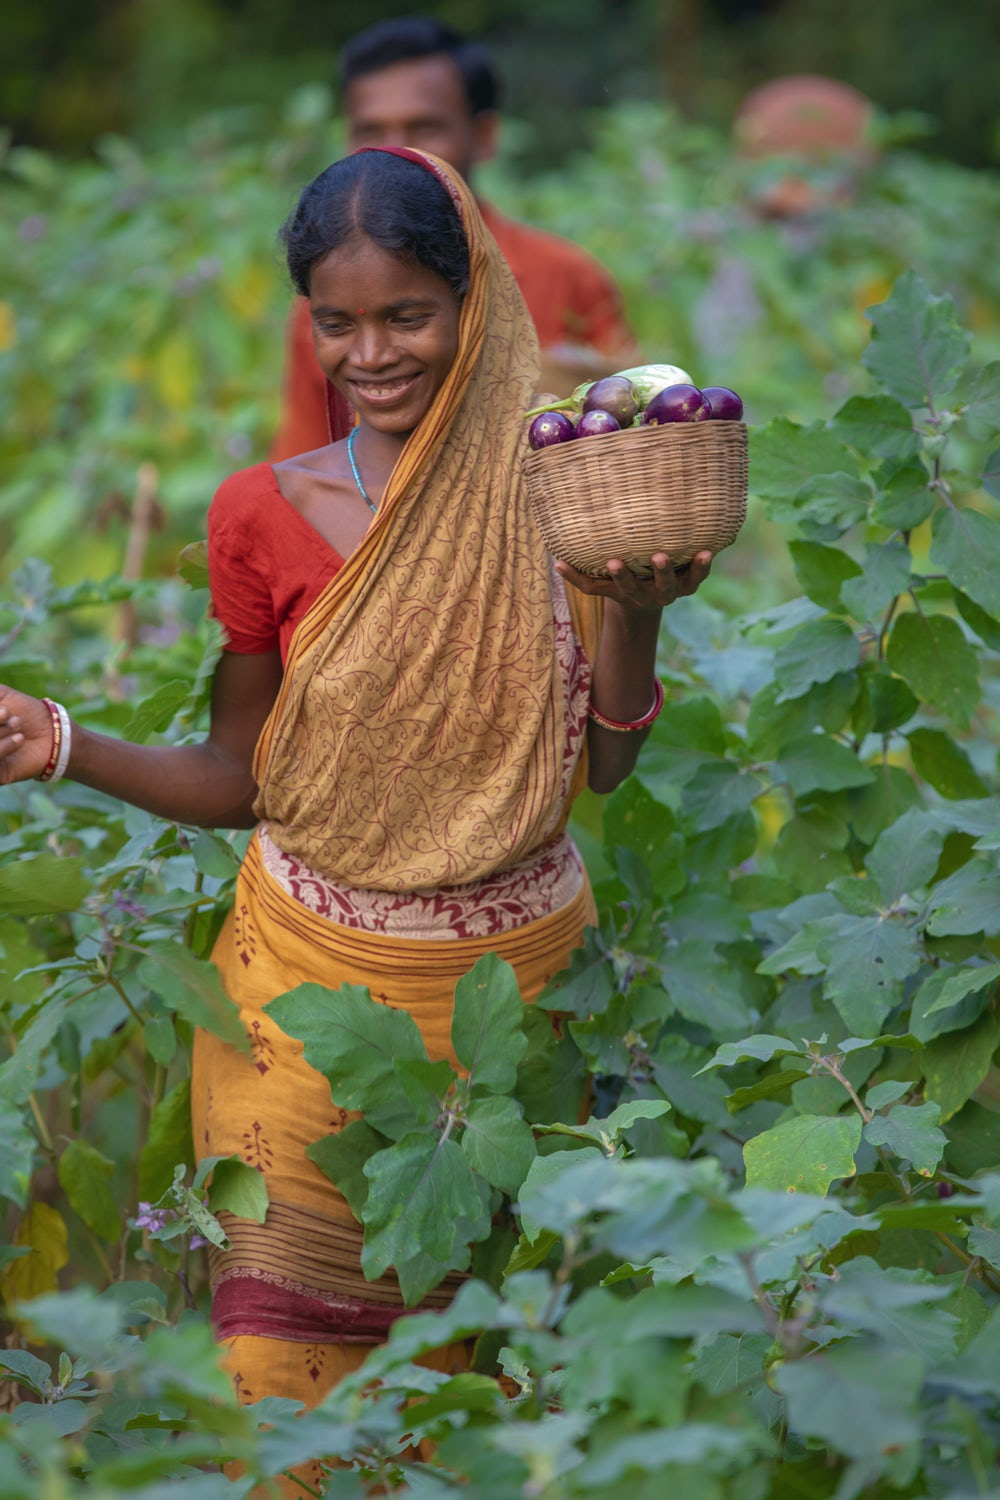 A smiling woman in India walks through her vegetable field.